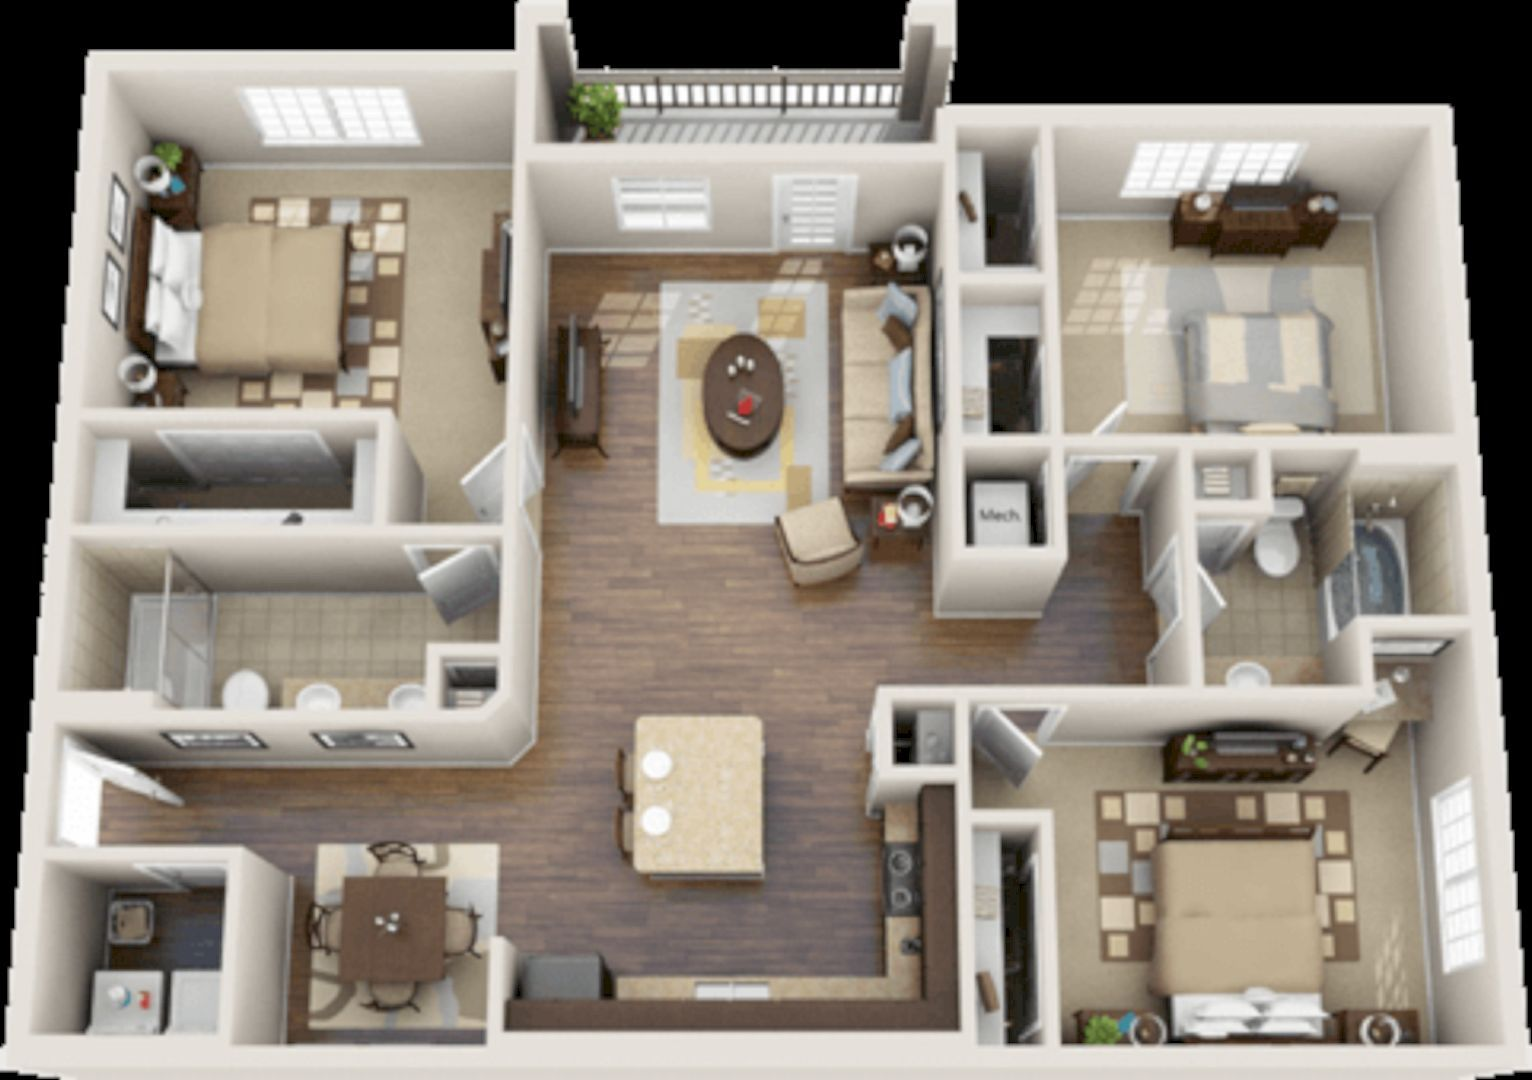 House Plan Bedroom Condos For Html on